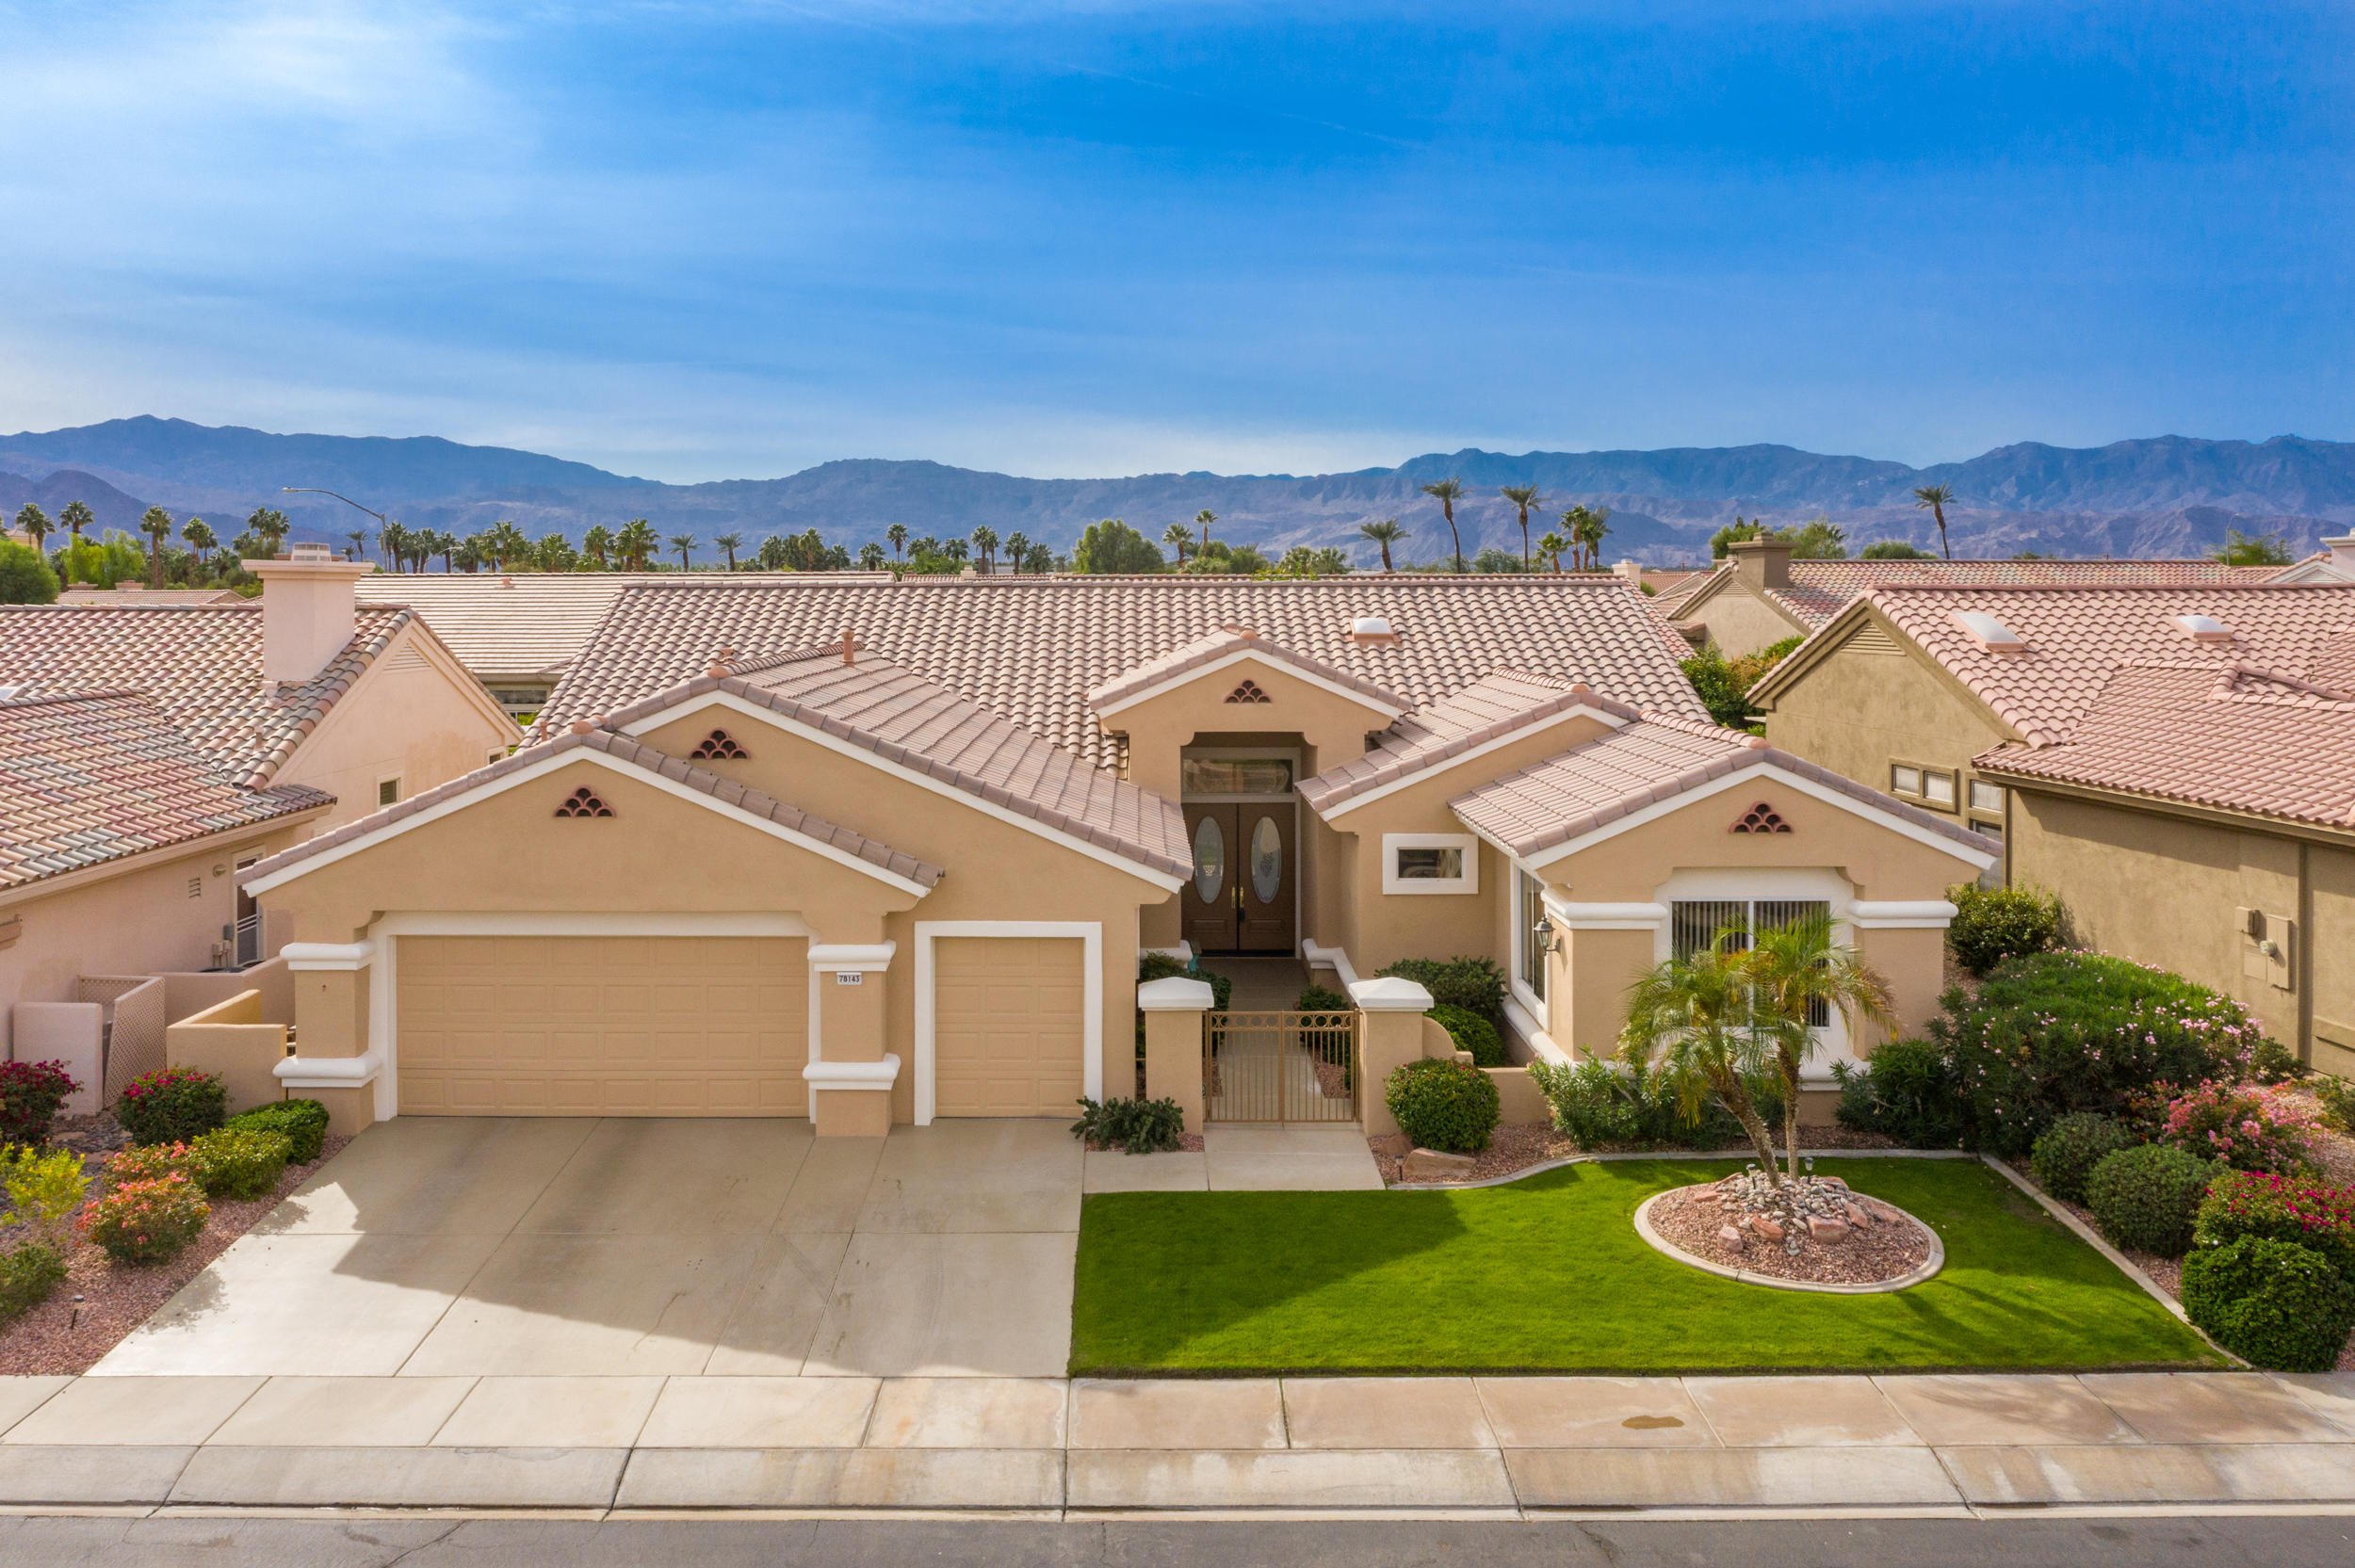 Photo of 78143 Foxbrook Lane, Palm Desert, CA 92211